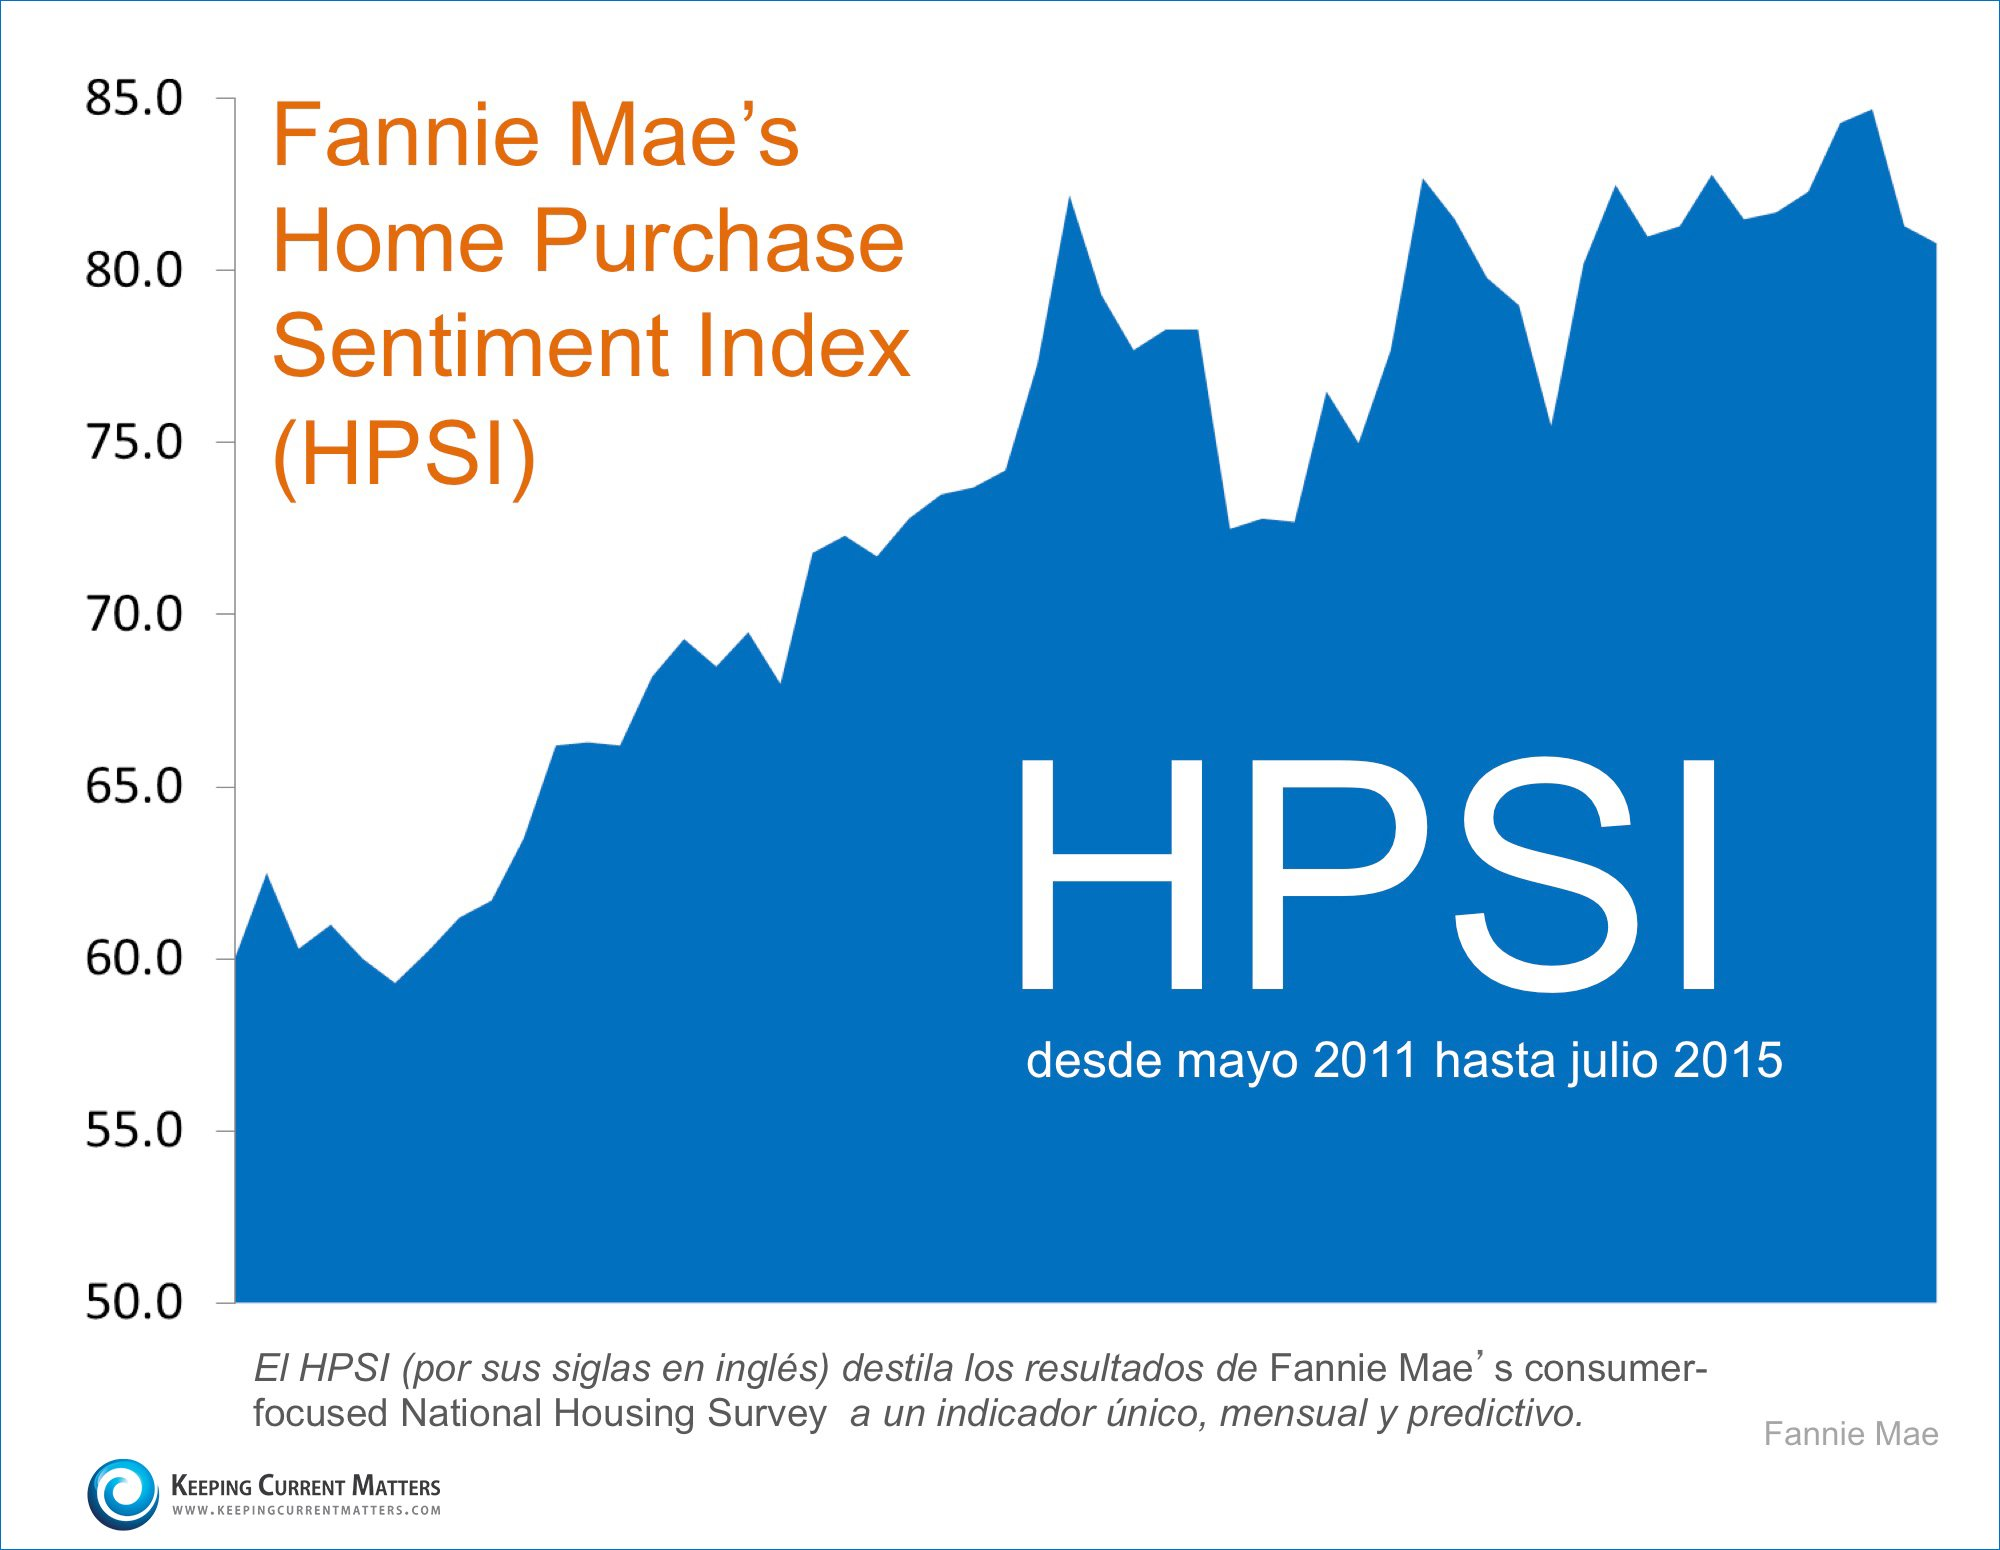 Home Purchase Sentiment Index de Fannie Mae | Keeping Current Matters